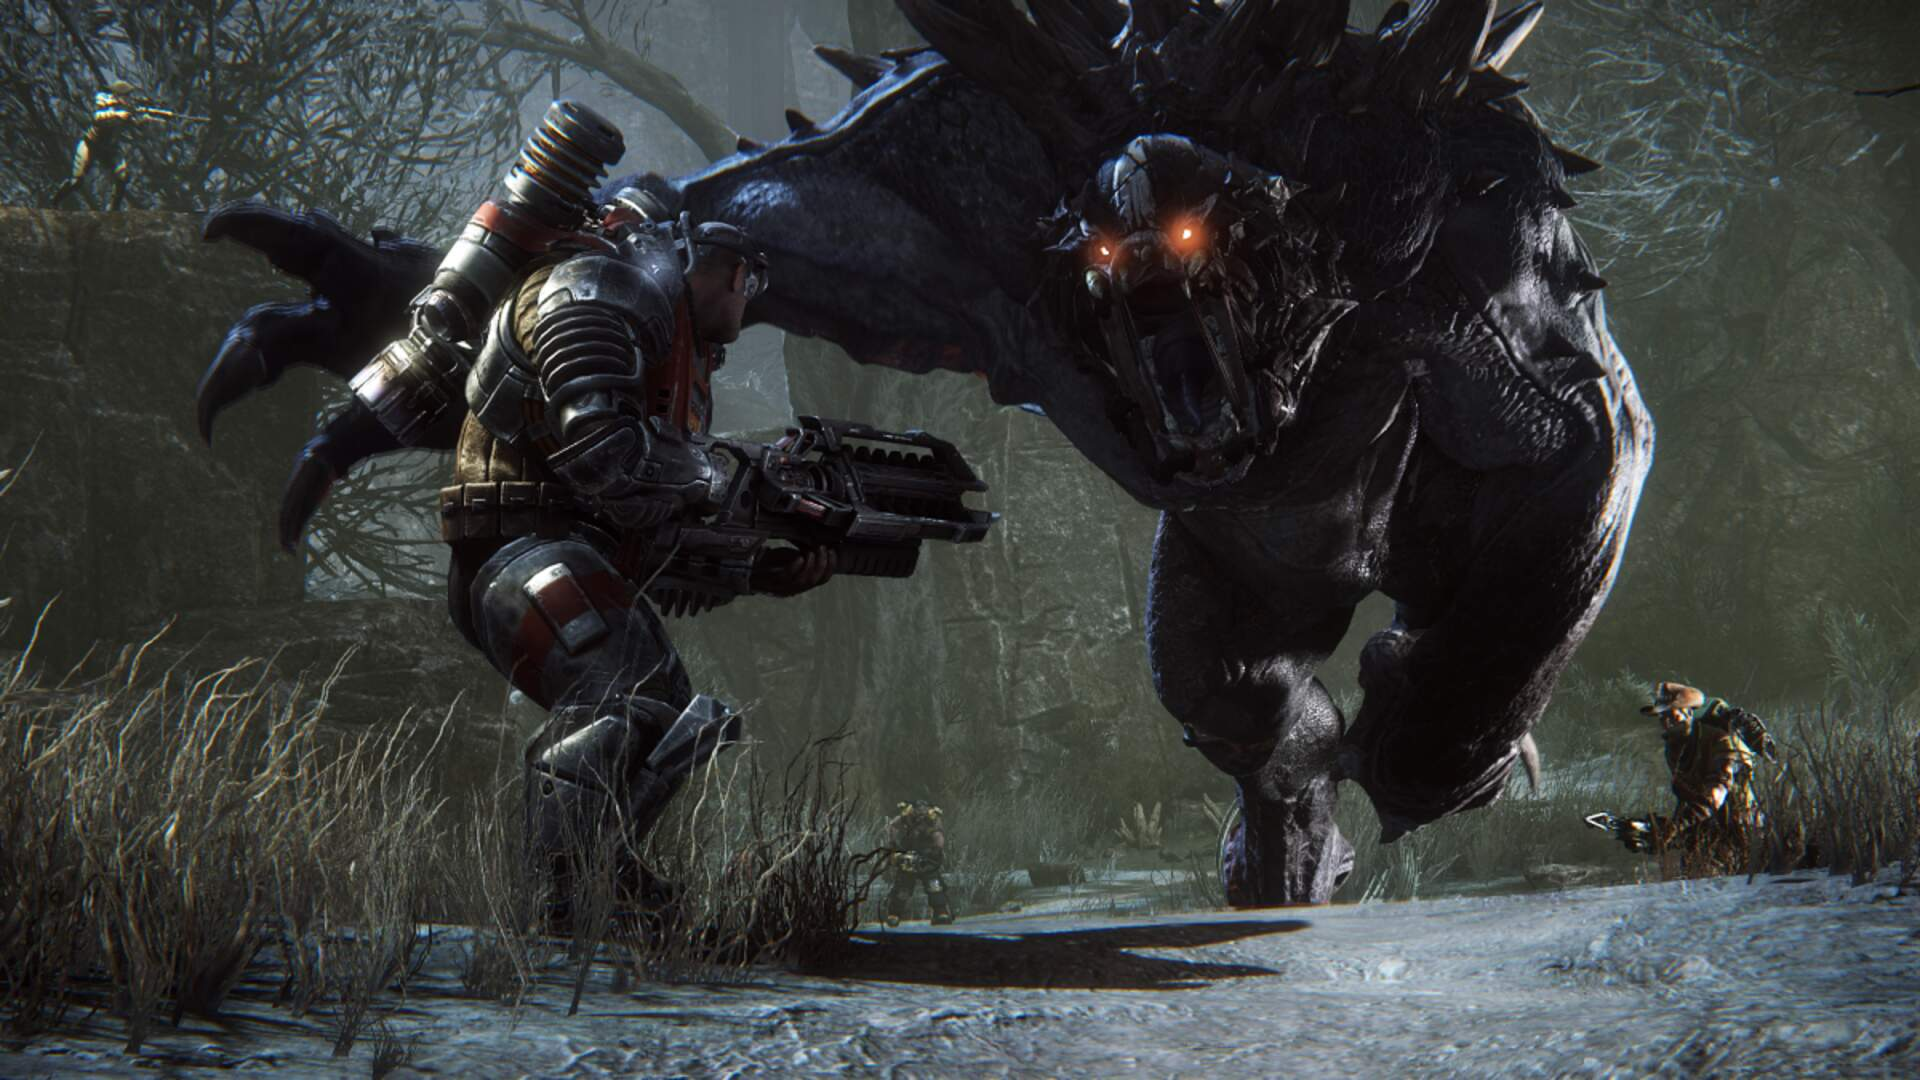 From Secret of Mana to King Kong: Evolve Changes the FPS